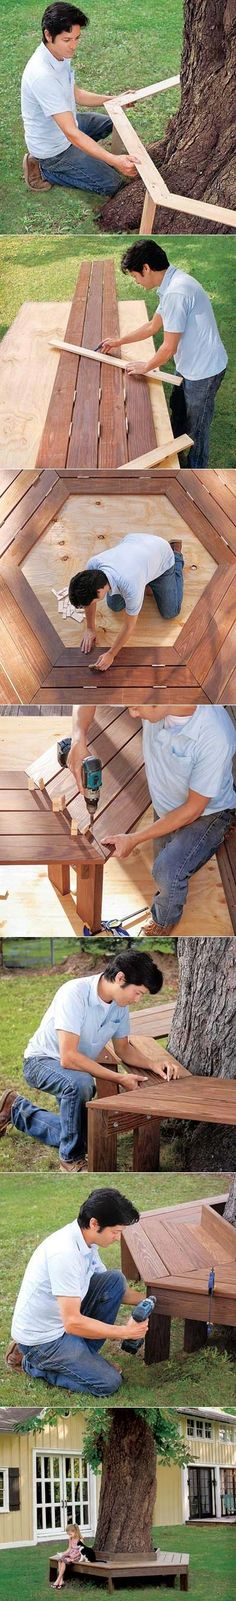 bench around tree - Tools You'll Need : Compound miter saw or circular saw Drill/driver with a 3⁄8-inch spade bit and 3⁄32×3-inch bit Speed Square Clamps Adjustable wrench 4-foot level Garden spade 120-grit sandpaper Materials You'll Need : strips of scrap lumber or cardboard to make a template and spacers. ¼-inch-thick scrap lumber or shims. 5⁄4×6 decking by Kebony